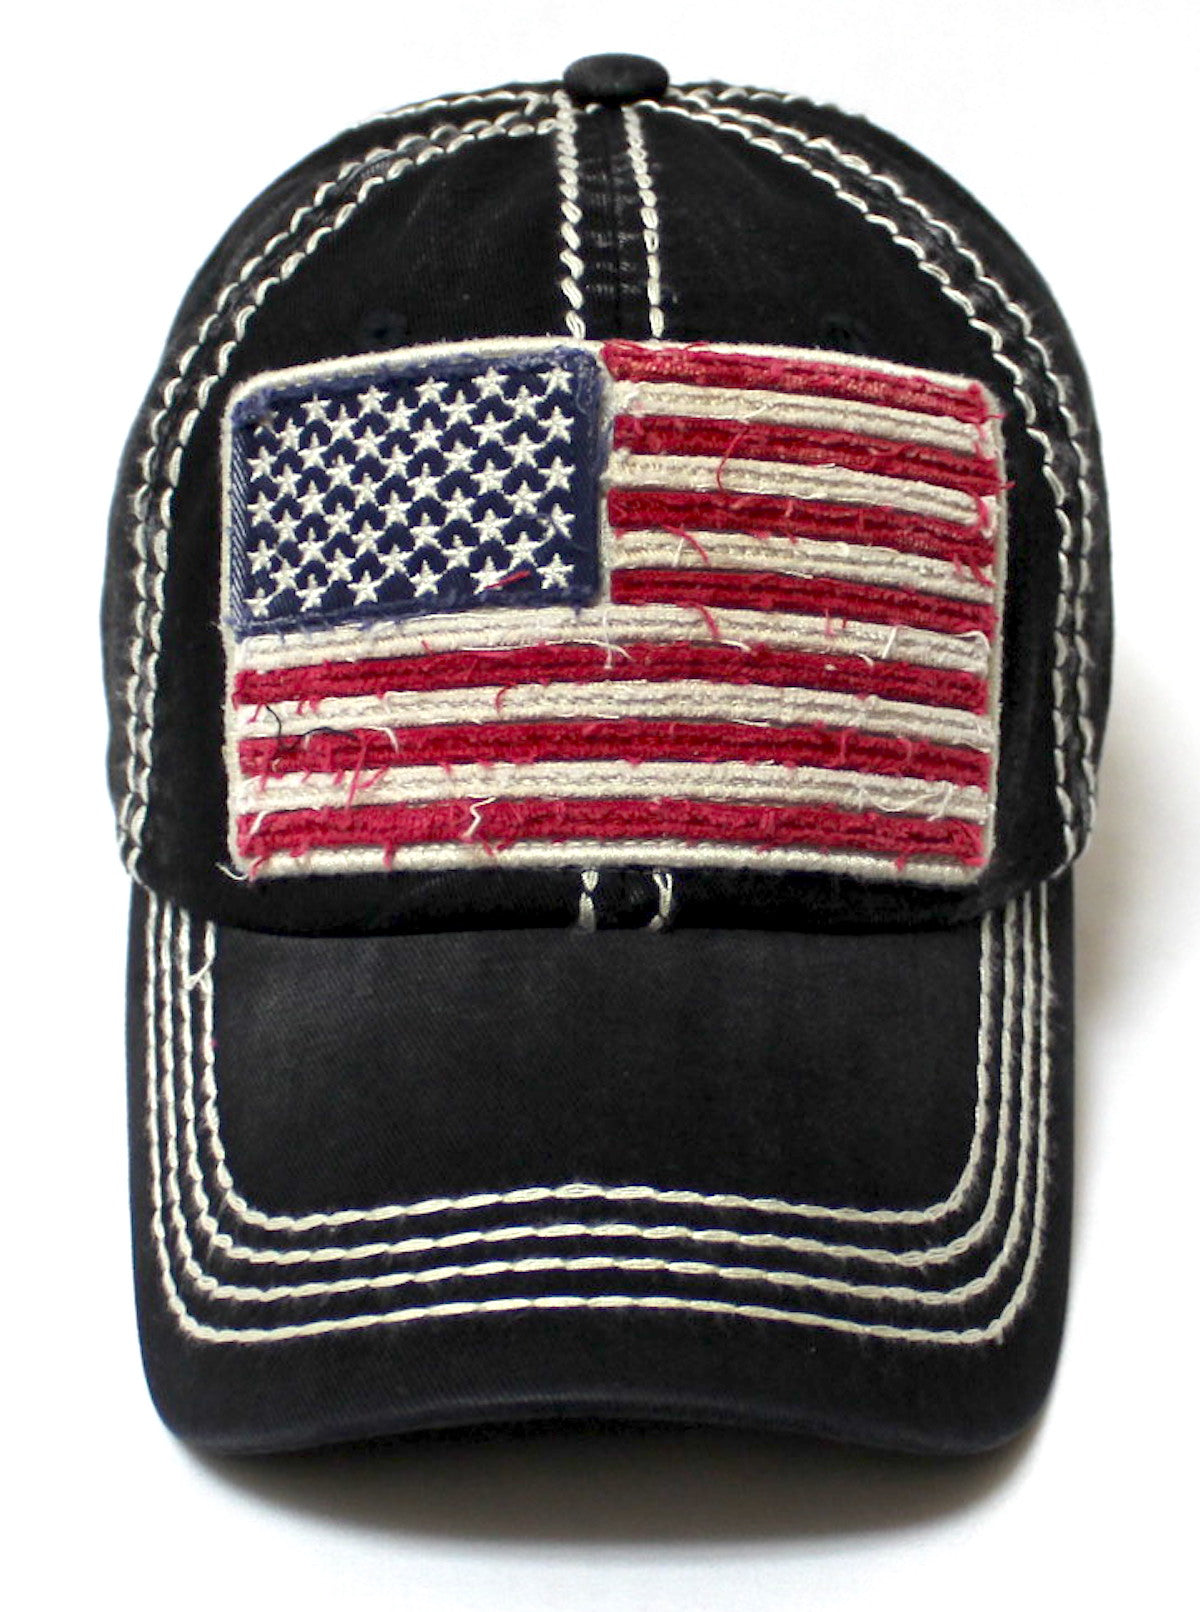 Oversized Vintage AMERICAN FLAG Patch Embroidery Baseball Cap, Black - Caps 'N Vintage